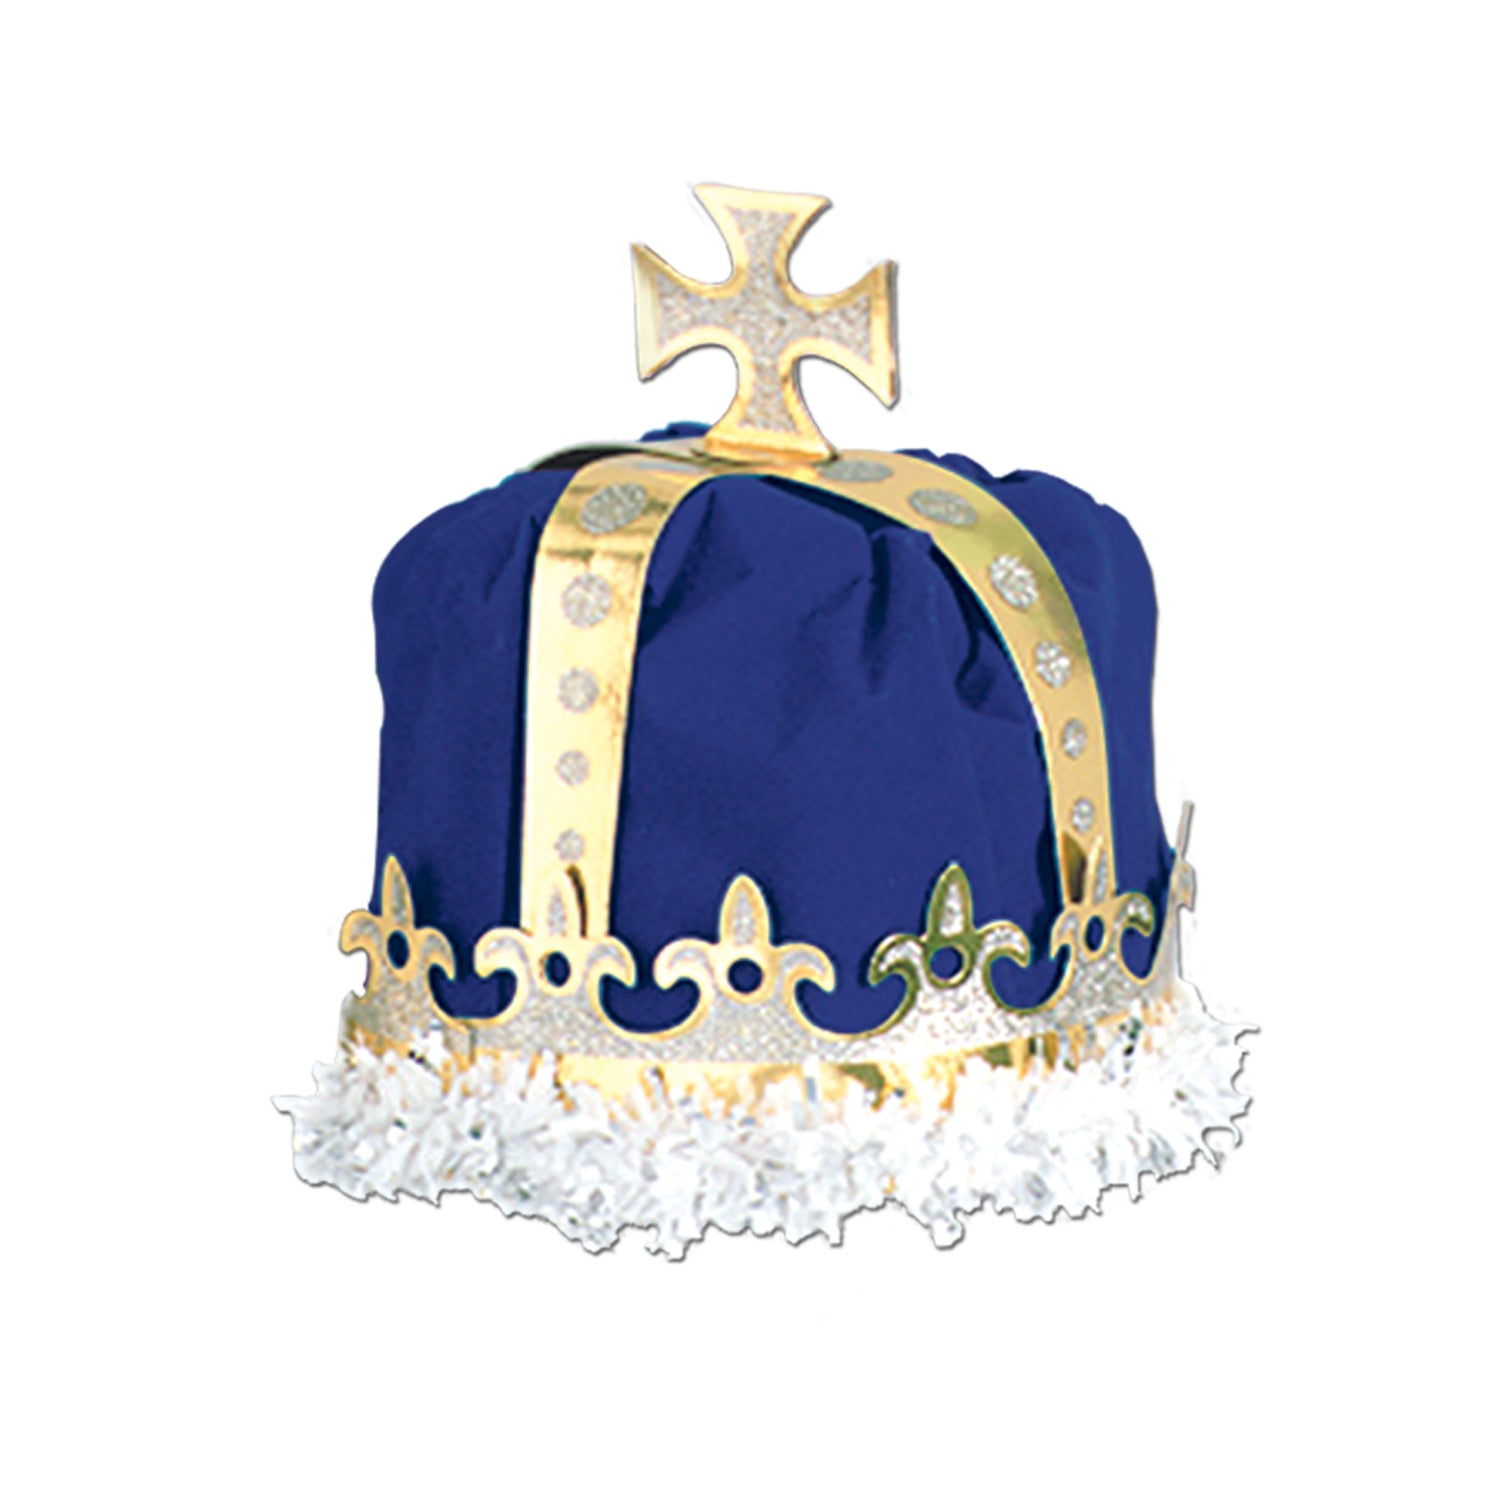 Royal King's Crown, blue; velvet-textured by Beistle - Mardi Gras Theme Decorations